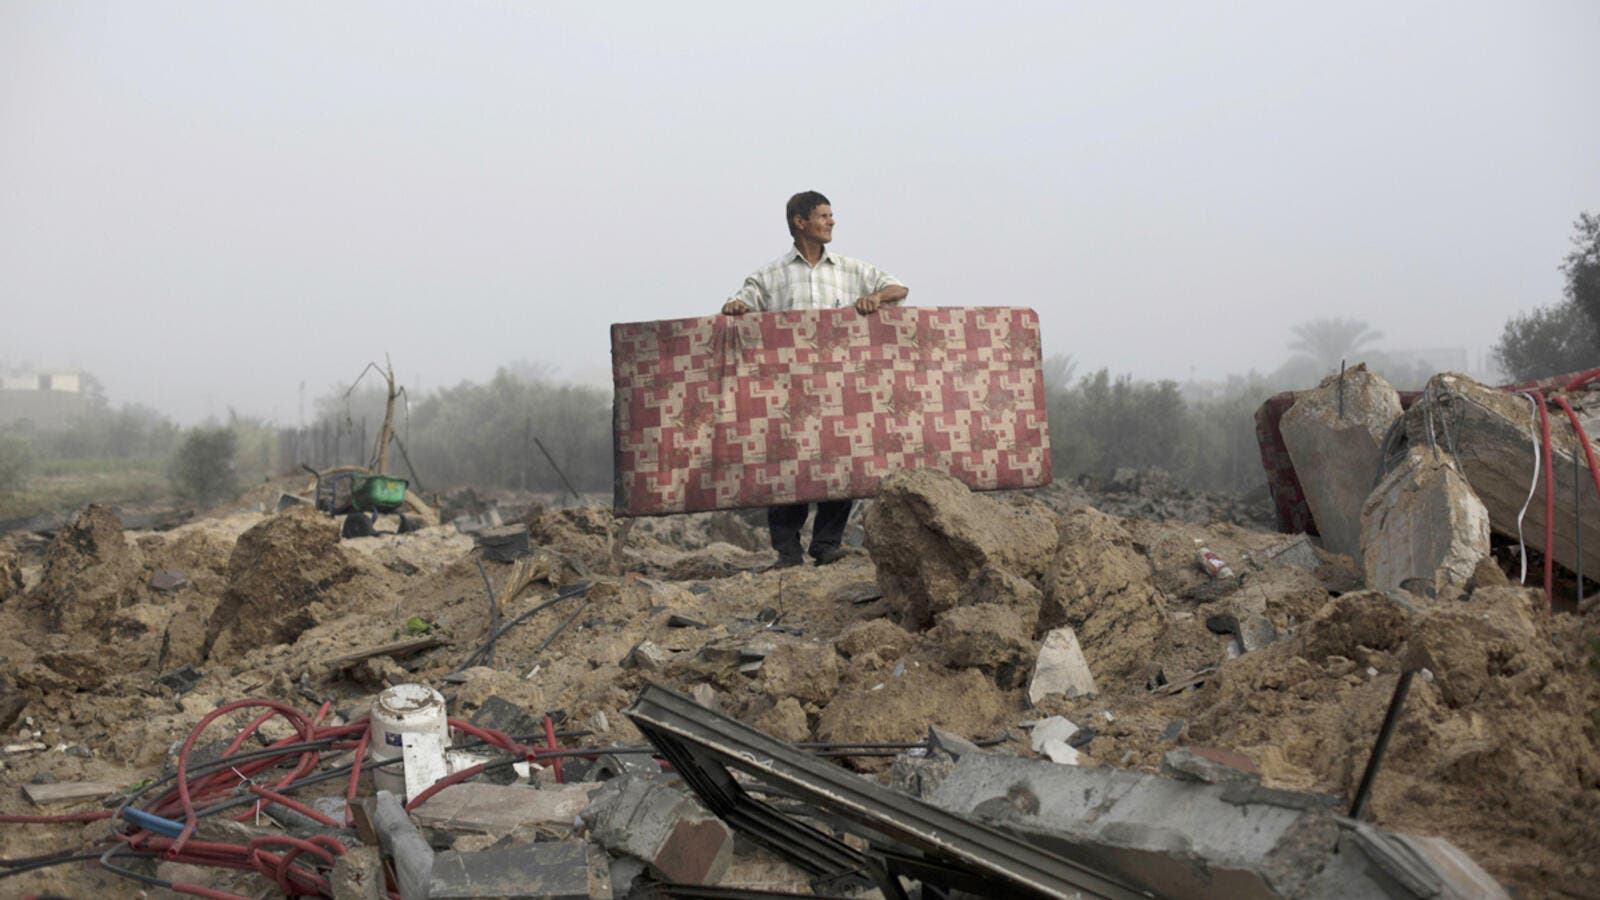 A Palestinian man carries a mattress at the rubble of a destroyed building following a military attack on his home. (AFP/File)